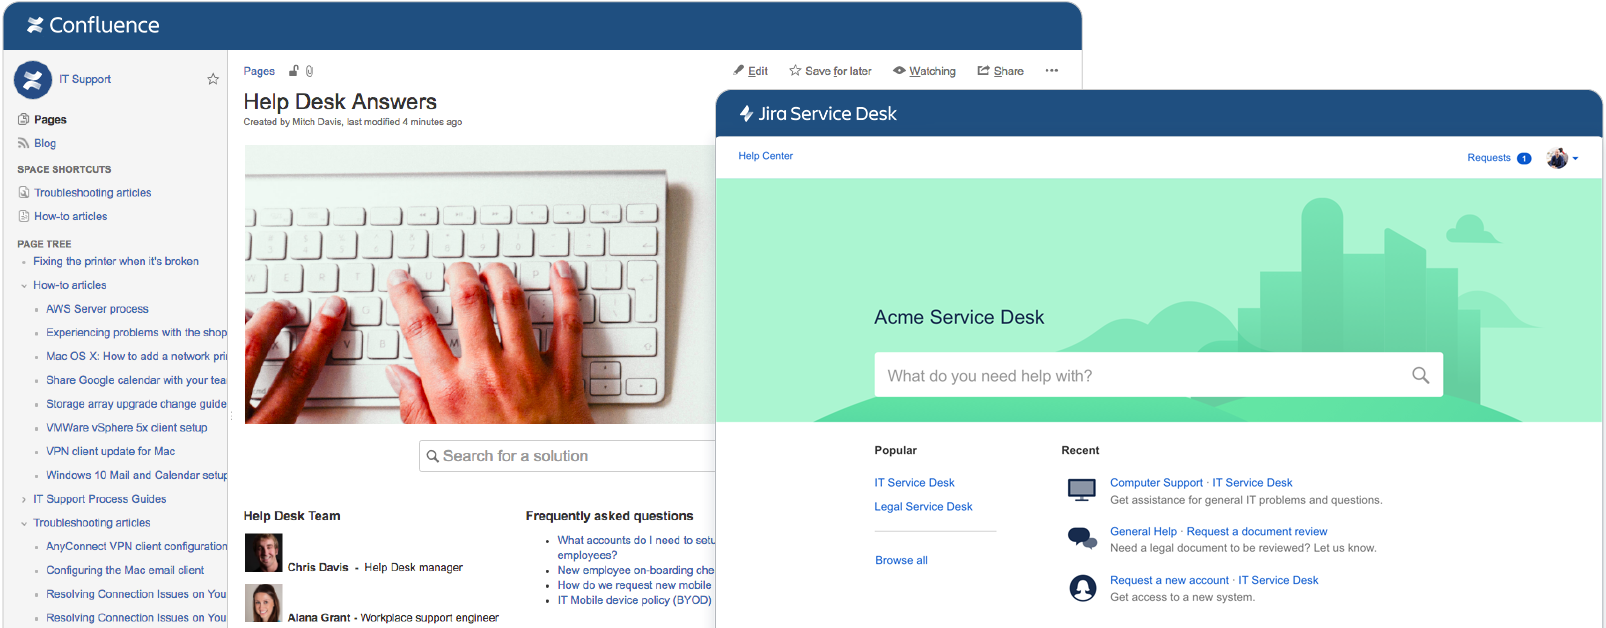 Confluence and Jira Service Desk screenshots